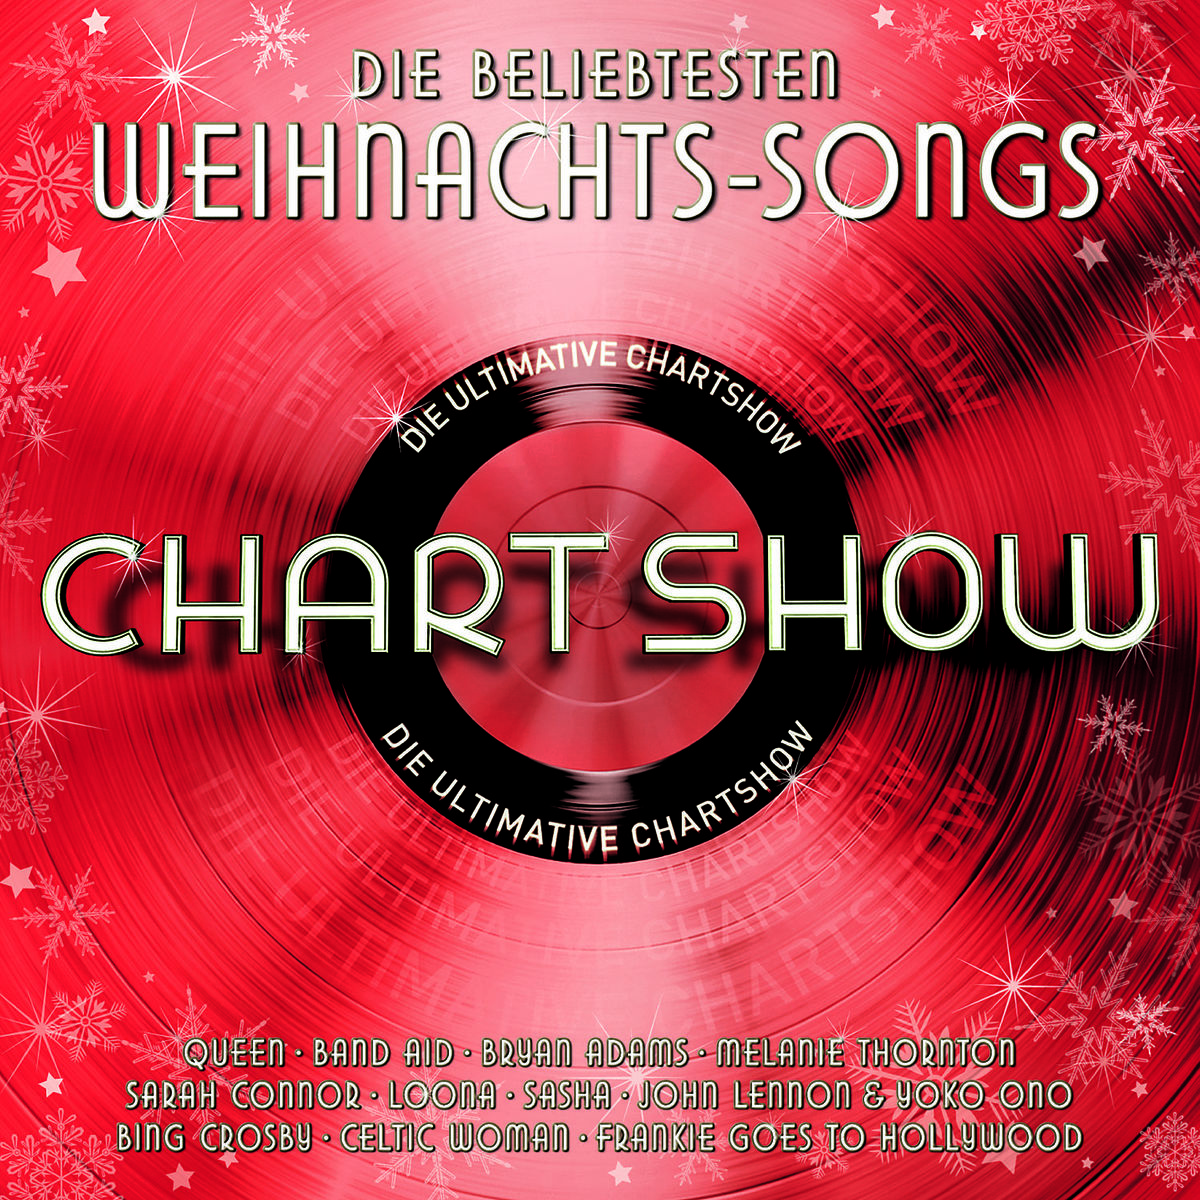 various die ultimative chartshow weihnachts songs